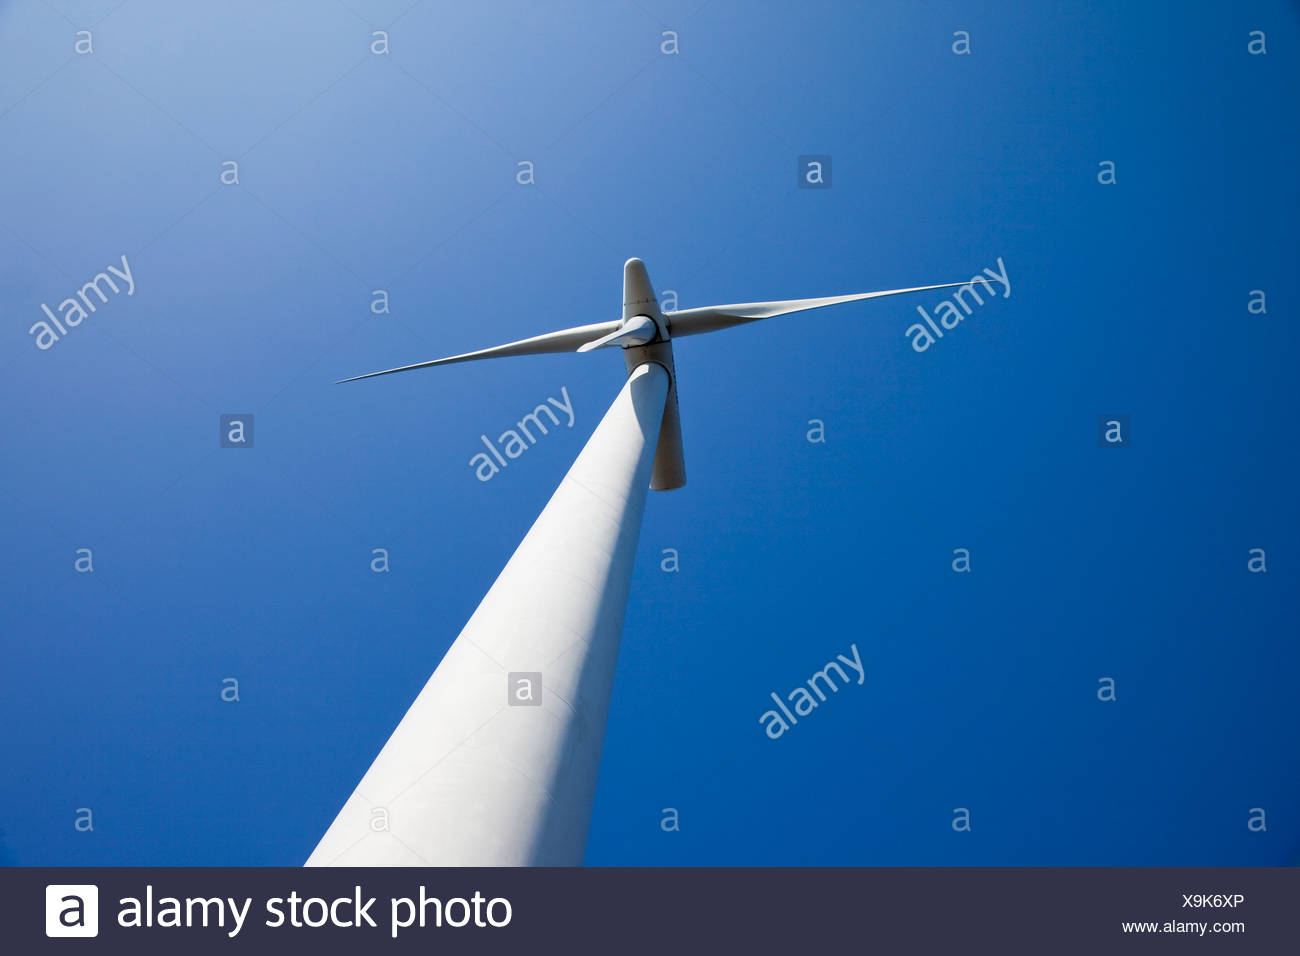 Wind power station from below - Stock Image